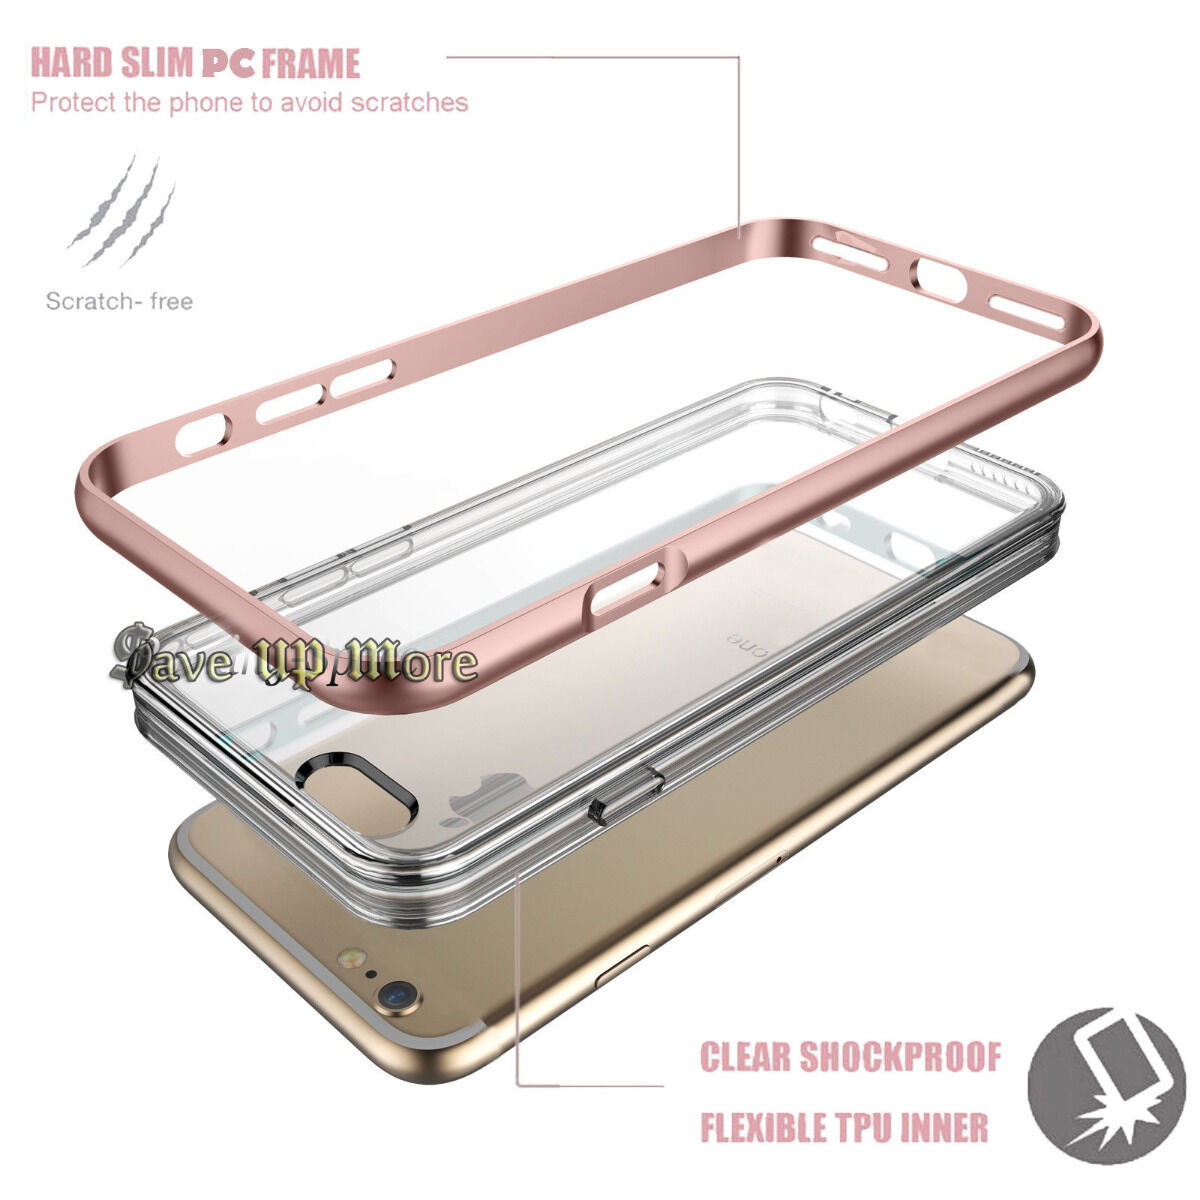 Armor Shockproof PC Hybrid Clear TPU Hard Case Cover For iPhone 6S 7 / 7 Plus